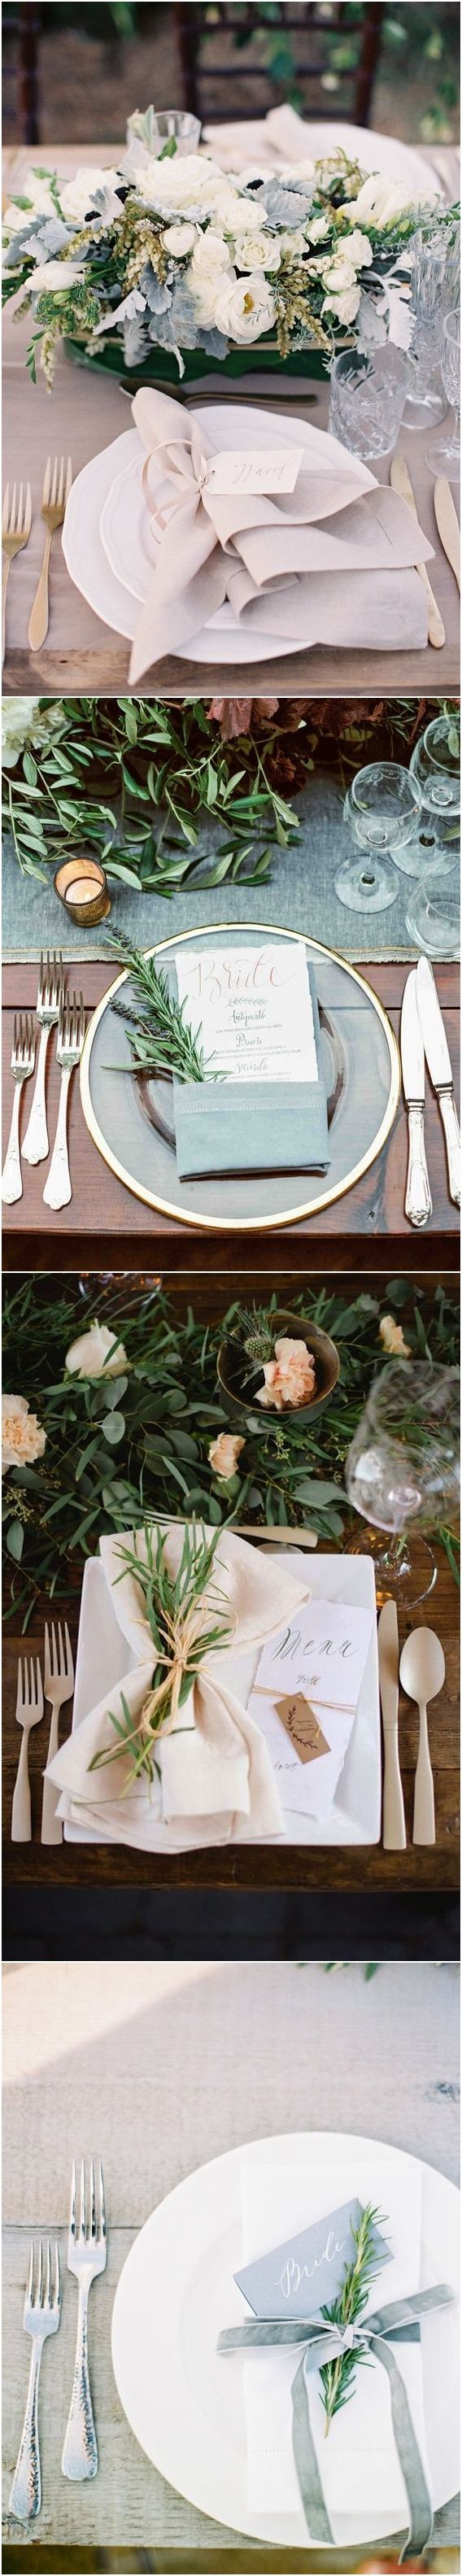 Greenery Wedding Place Setting Ideas / http://www.deerpearlflowers.com/greenery-wedding-place-setting-ideas/